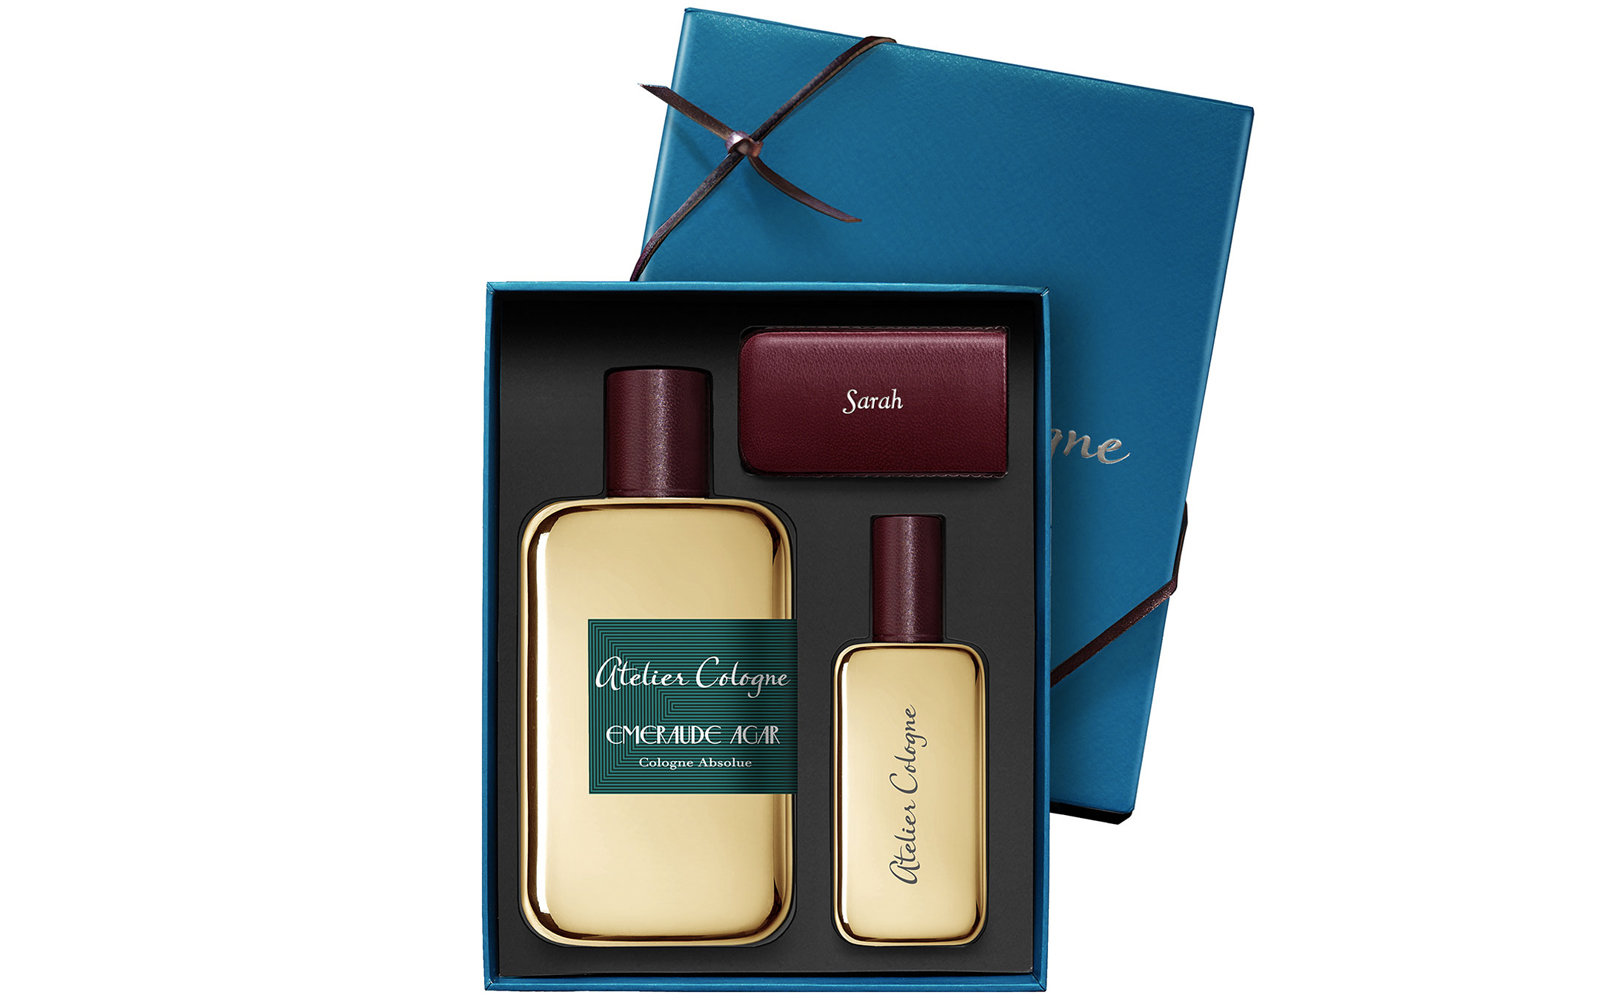 Atelier Cologne Emeraude Agar Cologne Asolue with Personalized Travel Spray